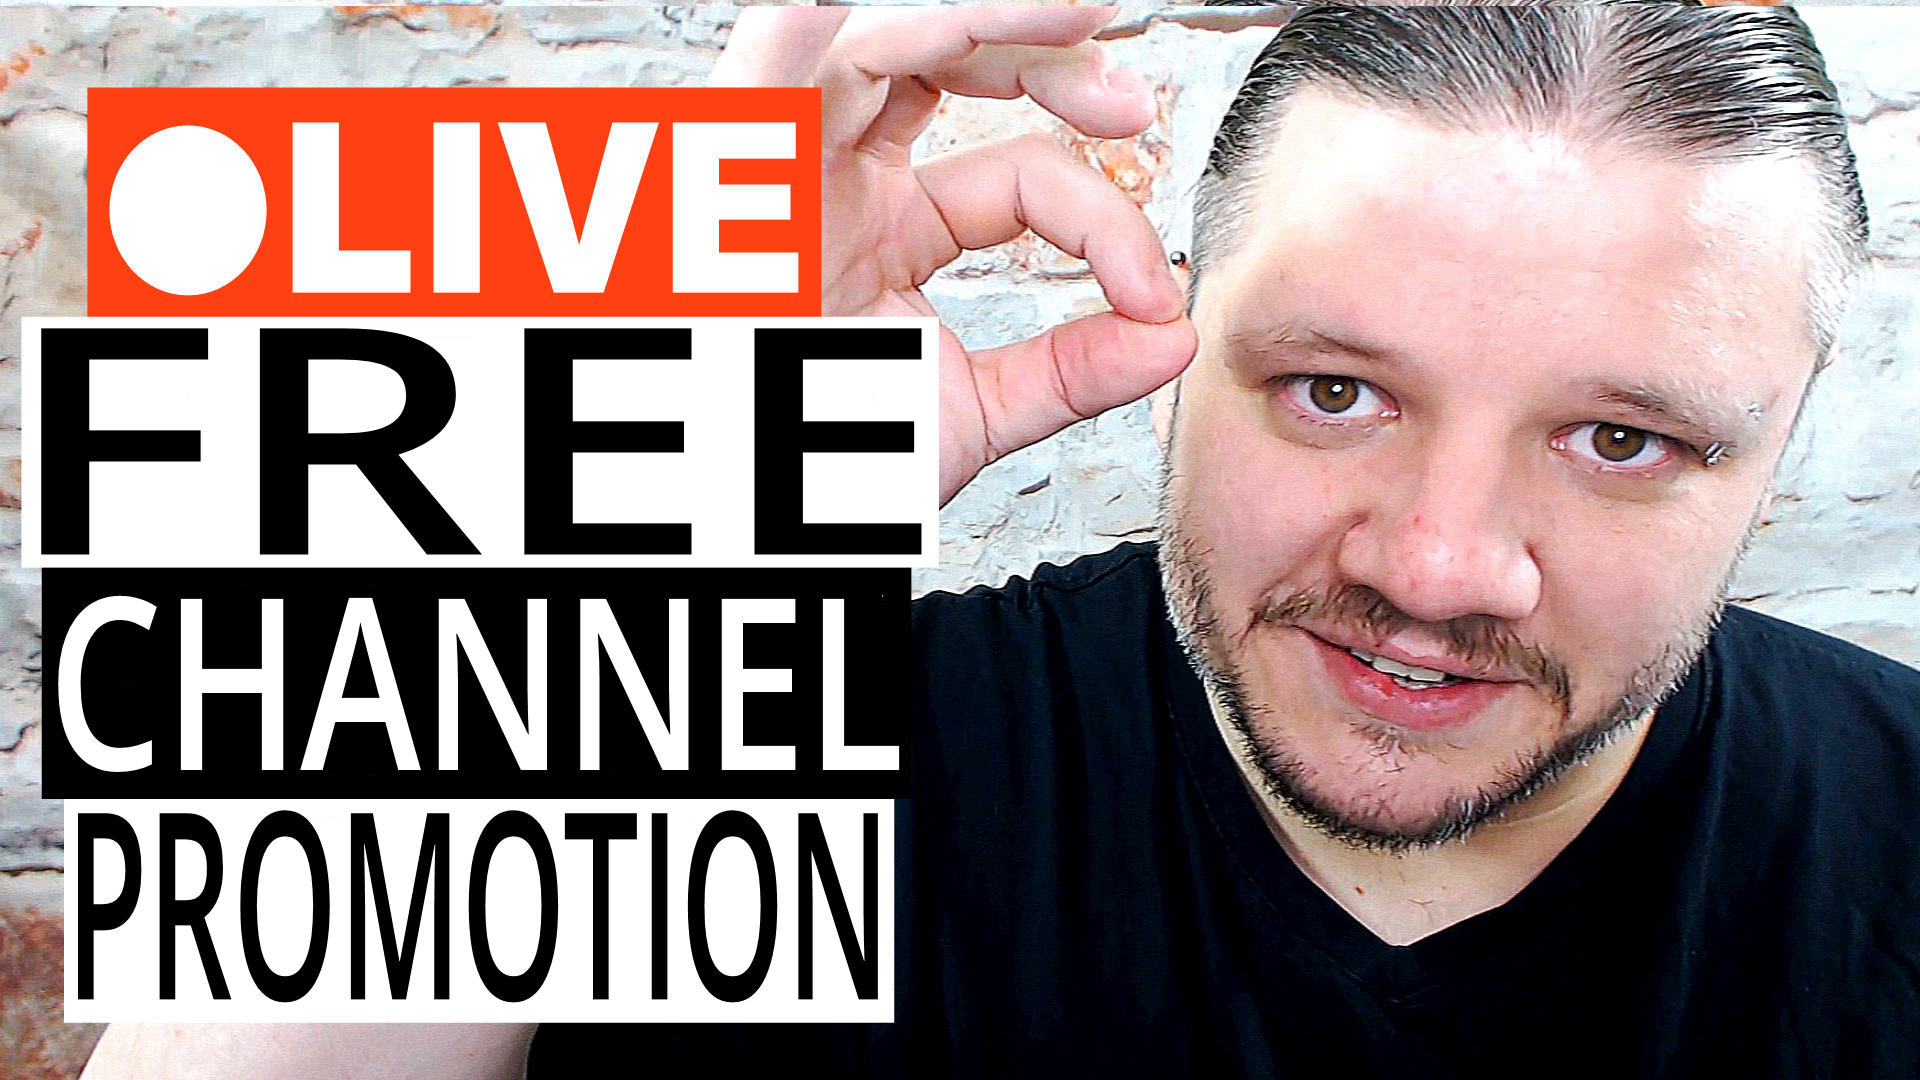 alan spicer,alanspicer,youtube tips,youtube tricks,live stream,tips for youtubers,How to Promote Your YouTube Channel for FREE,How to Promote Your YouTube Channel,Promote Your YouTube Channel for FREE,Promote Your YouTube Channel,How to Promote Your YouTube Channel FREE,Get more views on youtube,gain more subscribers,promoting a youtube channel for free,promoting a youtube channel,promoting a youtube channel free,promote your youtube channel 2018,free promotion